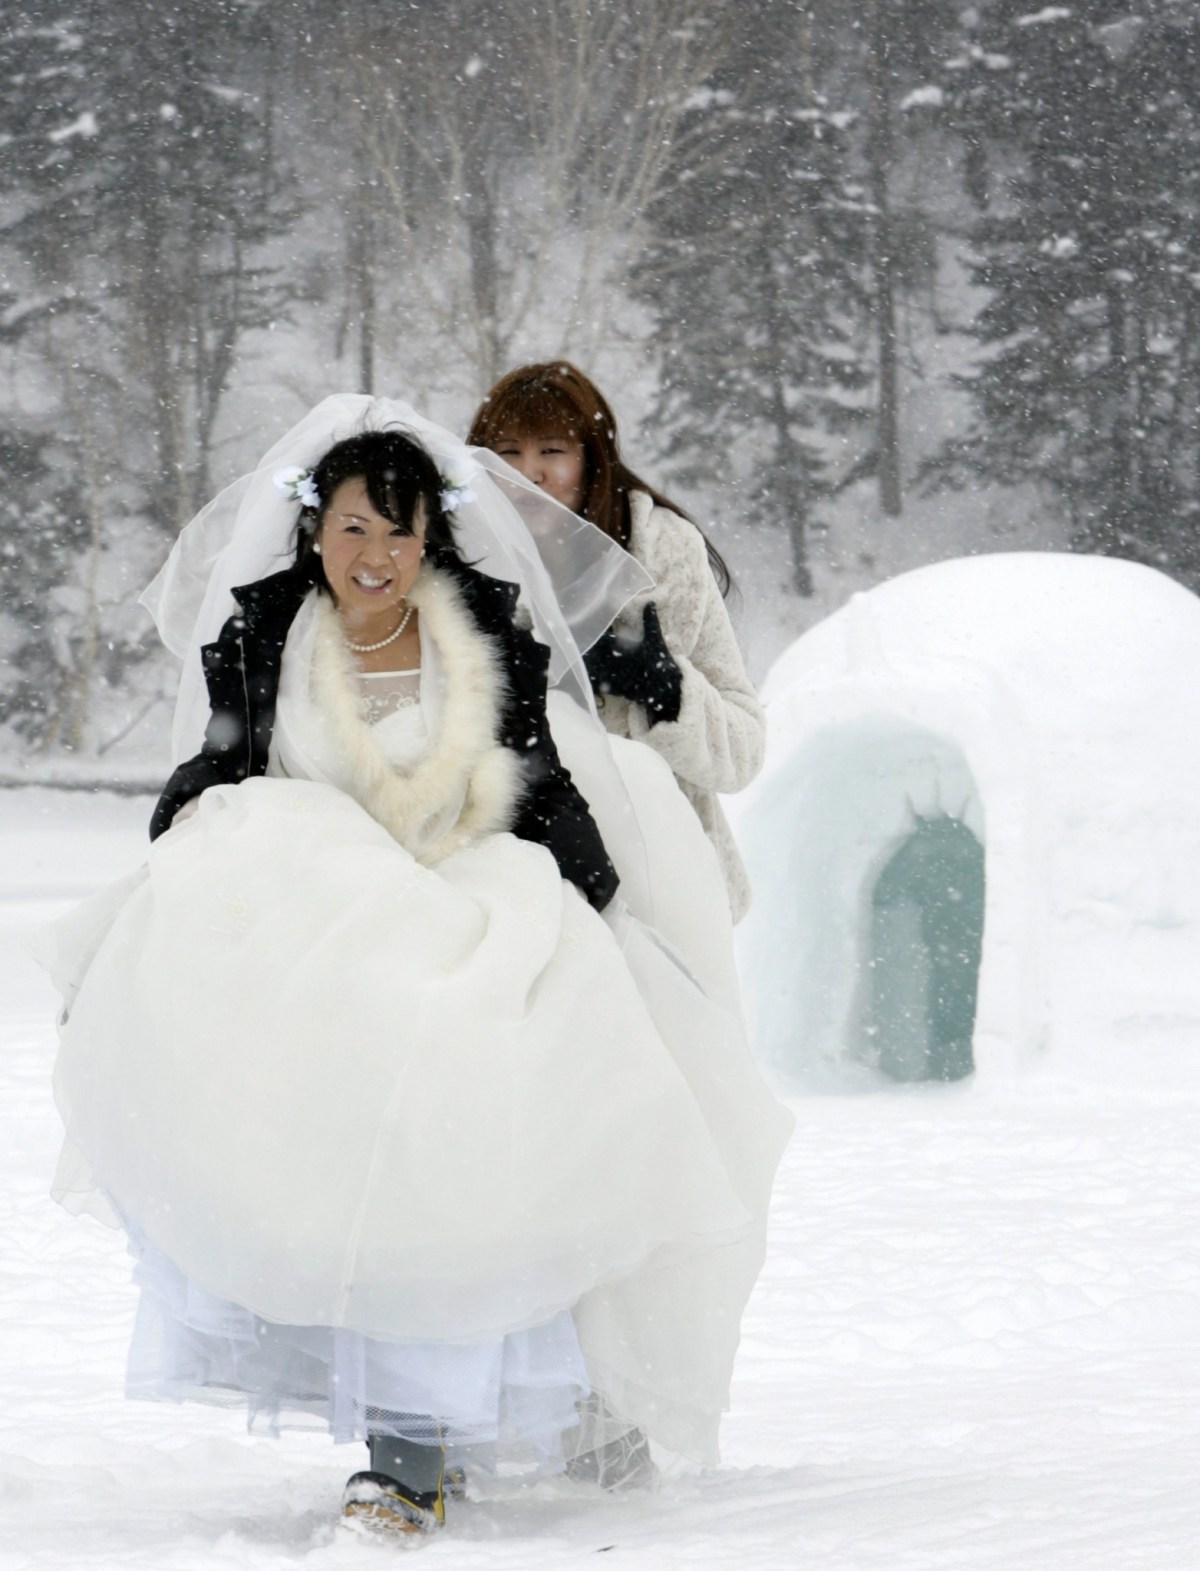 A bride braves the snow and cold as she walks towards her wedding ceremony at the 'Igloo village' on Lake Shikaribetsu in Shikaoi town in Japan's northern island of Hokkaido February 14, 2007. Reuters/Yuriko Nakao.